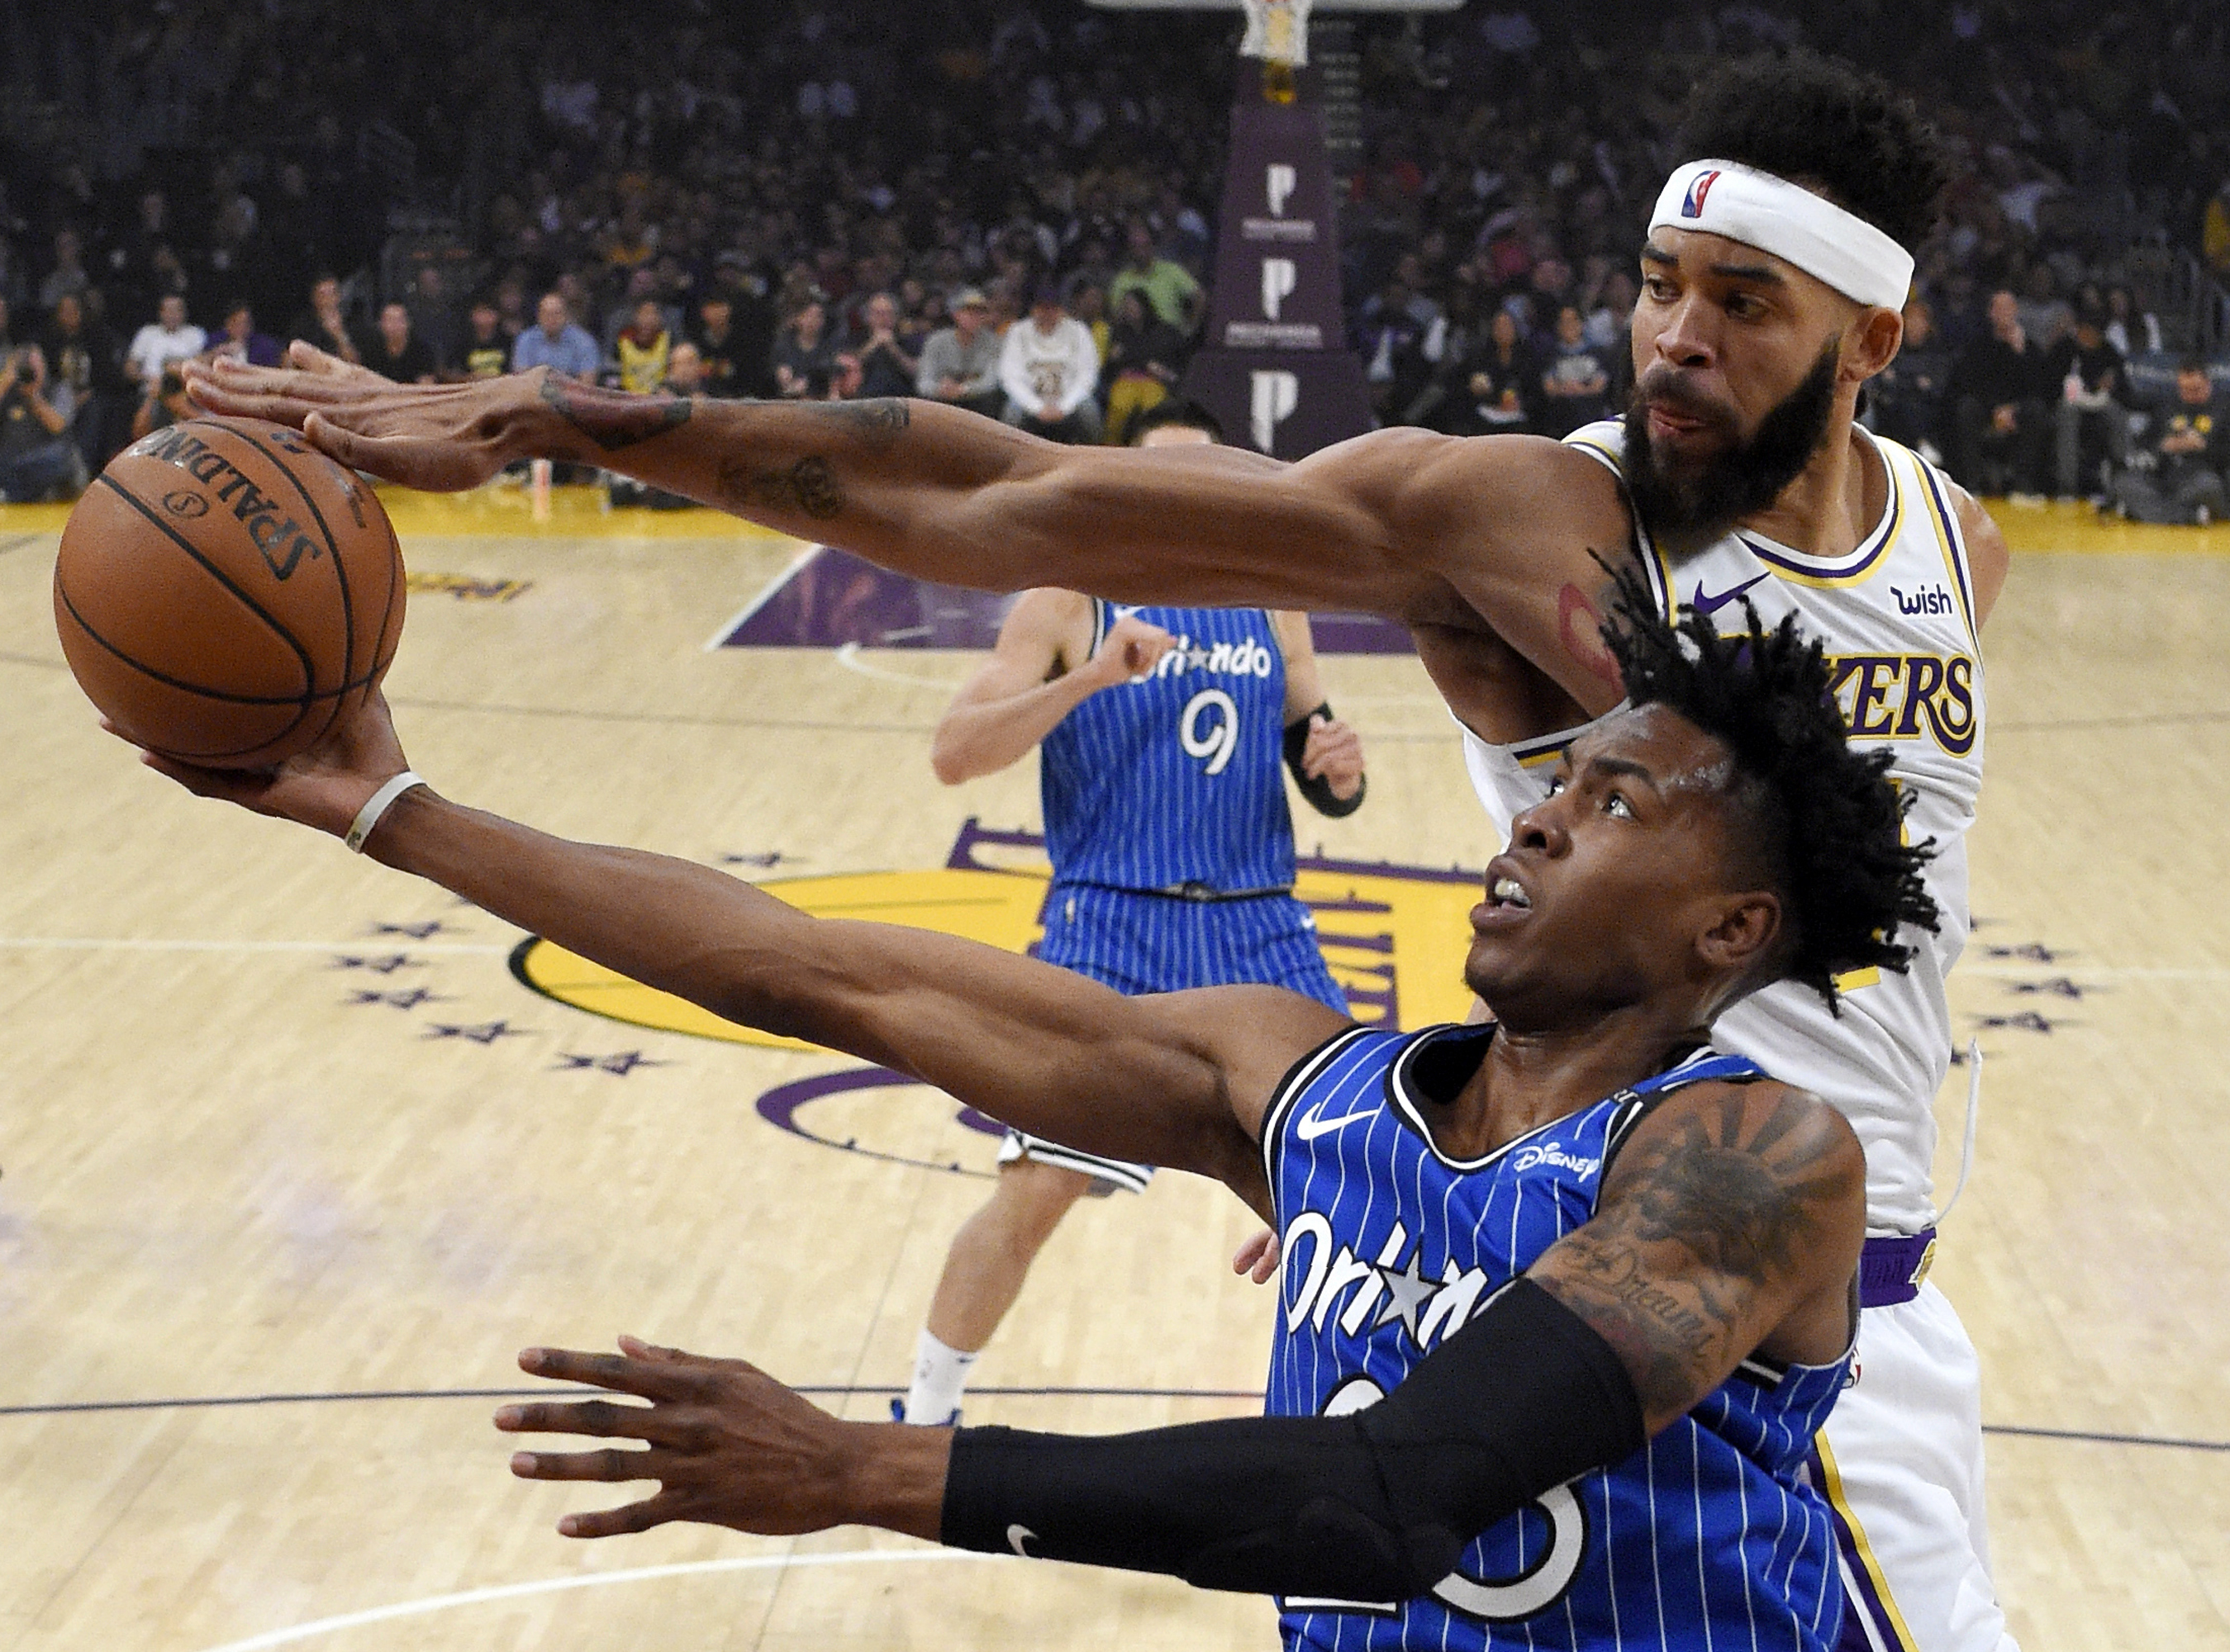 Los Angeles Lakers center JaVale McGee, top, blocks the shot of Orlando Magic forward Wesley Iwundu, bottom, during the first half of an NBA basketball game Sunday, Nov. 25, 2018, in Los Angeles. (AP Photo/Mark J. Terrill)